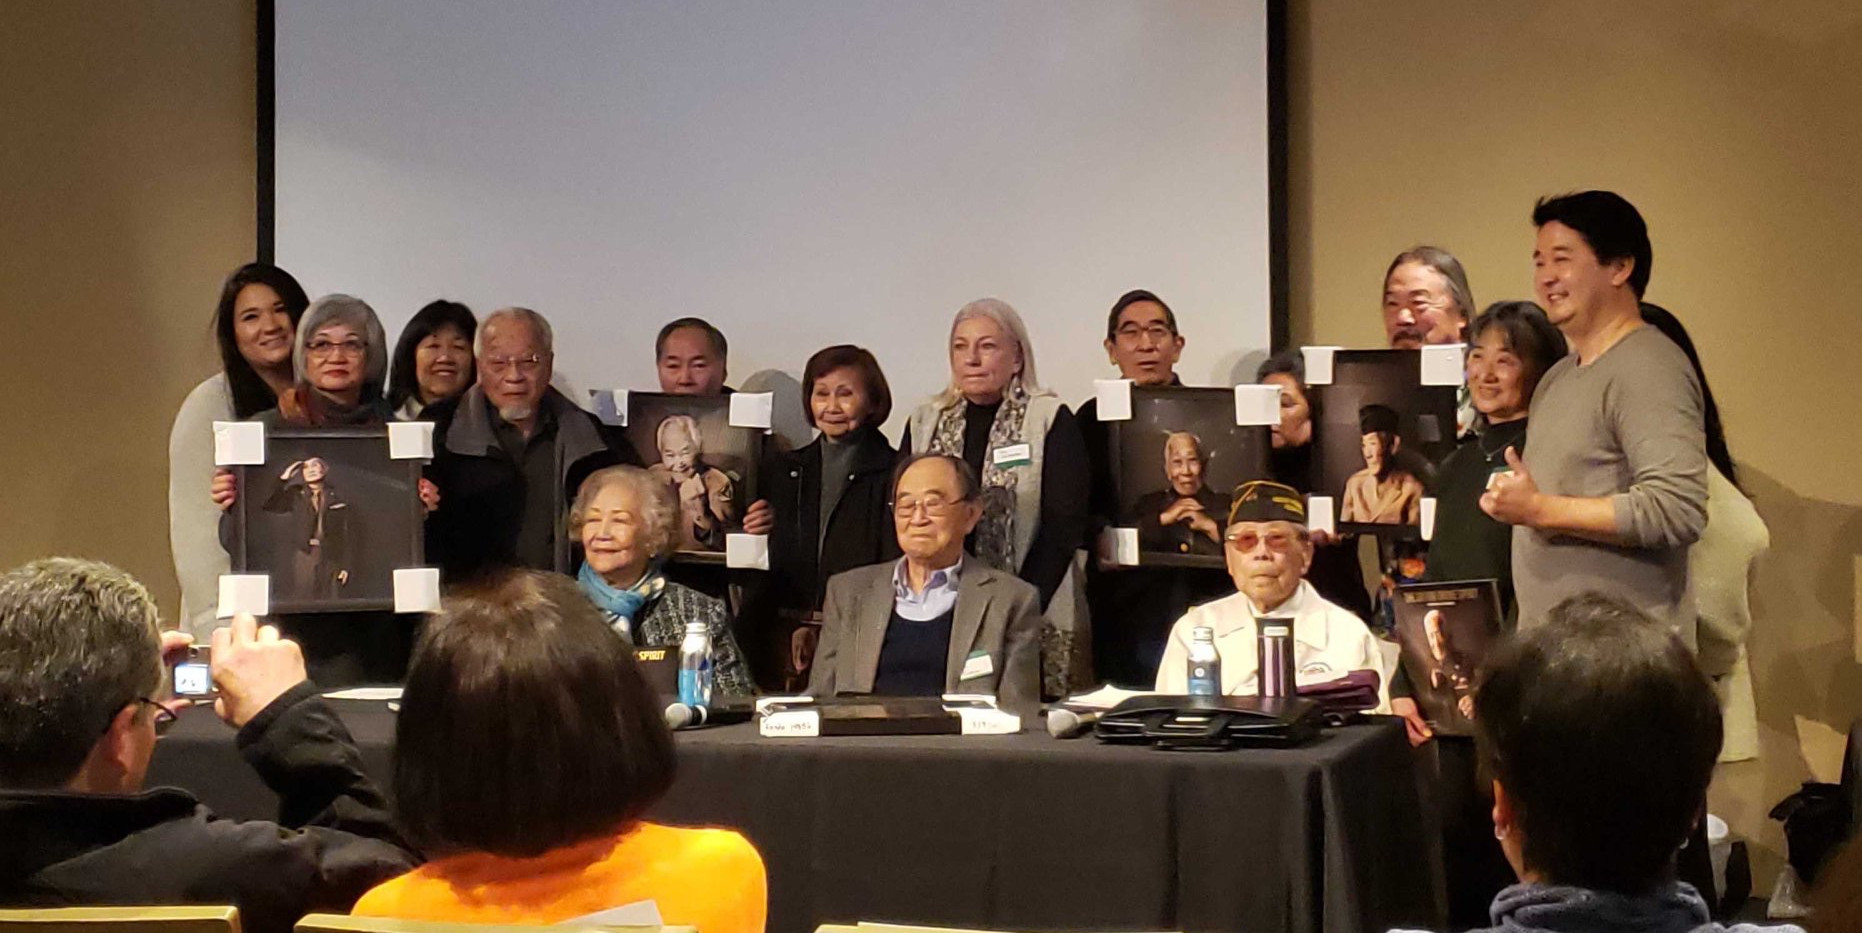 Nisei Veterans and Family Members with Shane Sato and Robert Horsting